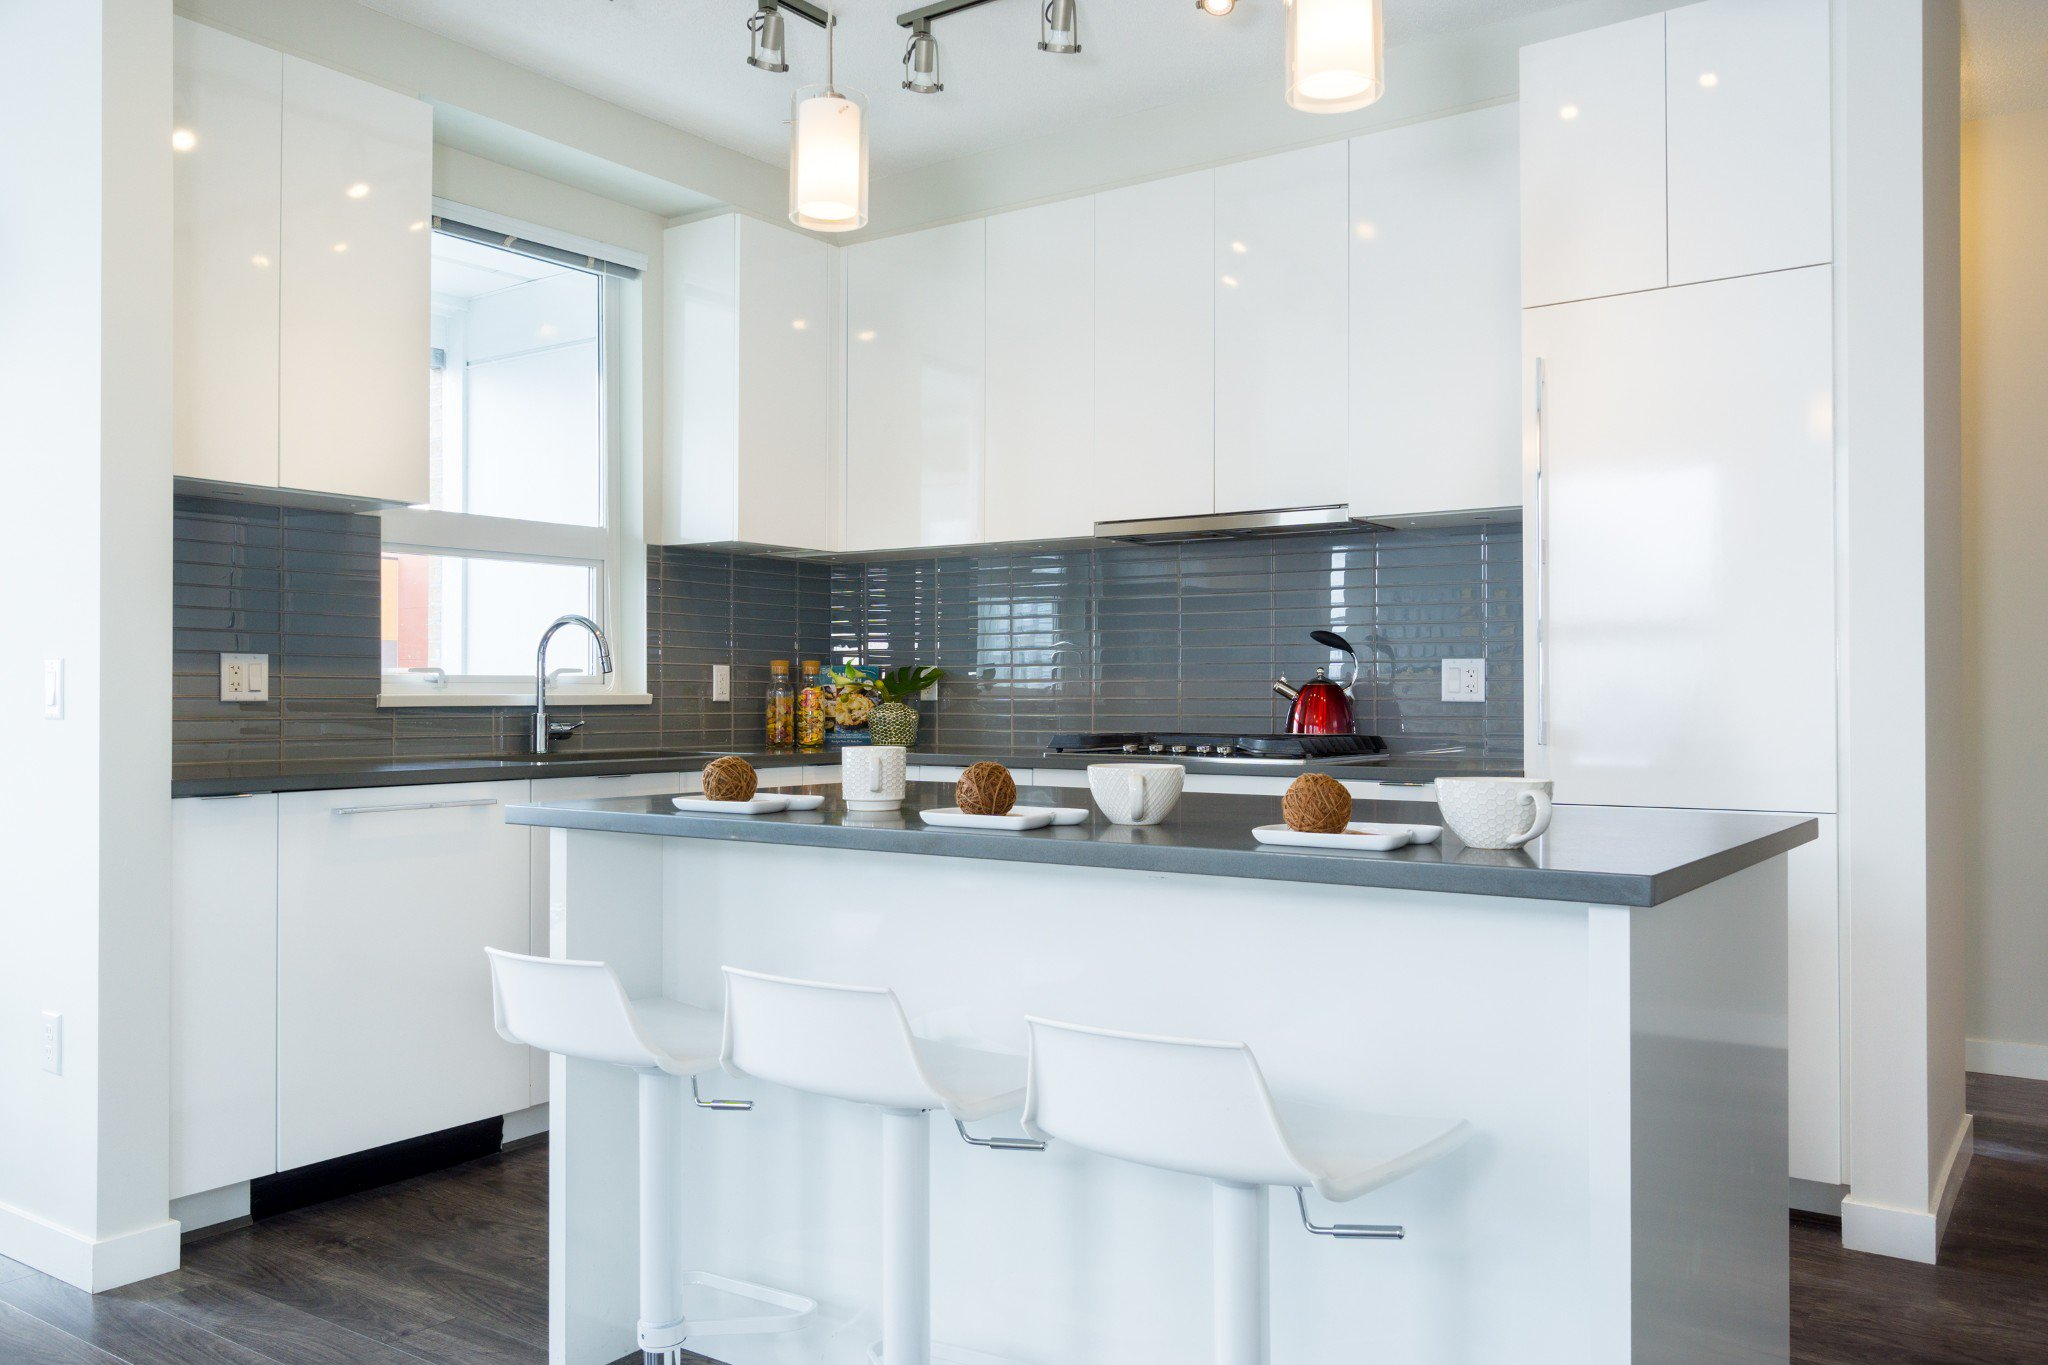 """Photo 10: Photos: 303 9311 ALEXANDRA Road in Richmond: West Cambie Condo for sale in """"ALEXANDRA COURT"""" : MLS®# R2347629"""